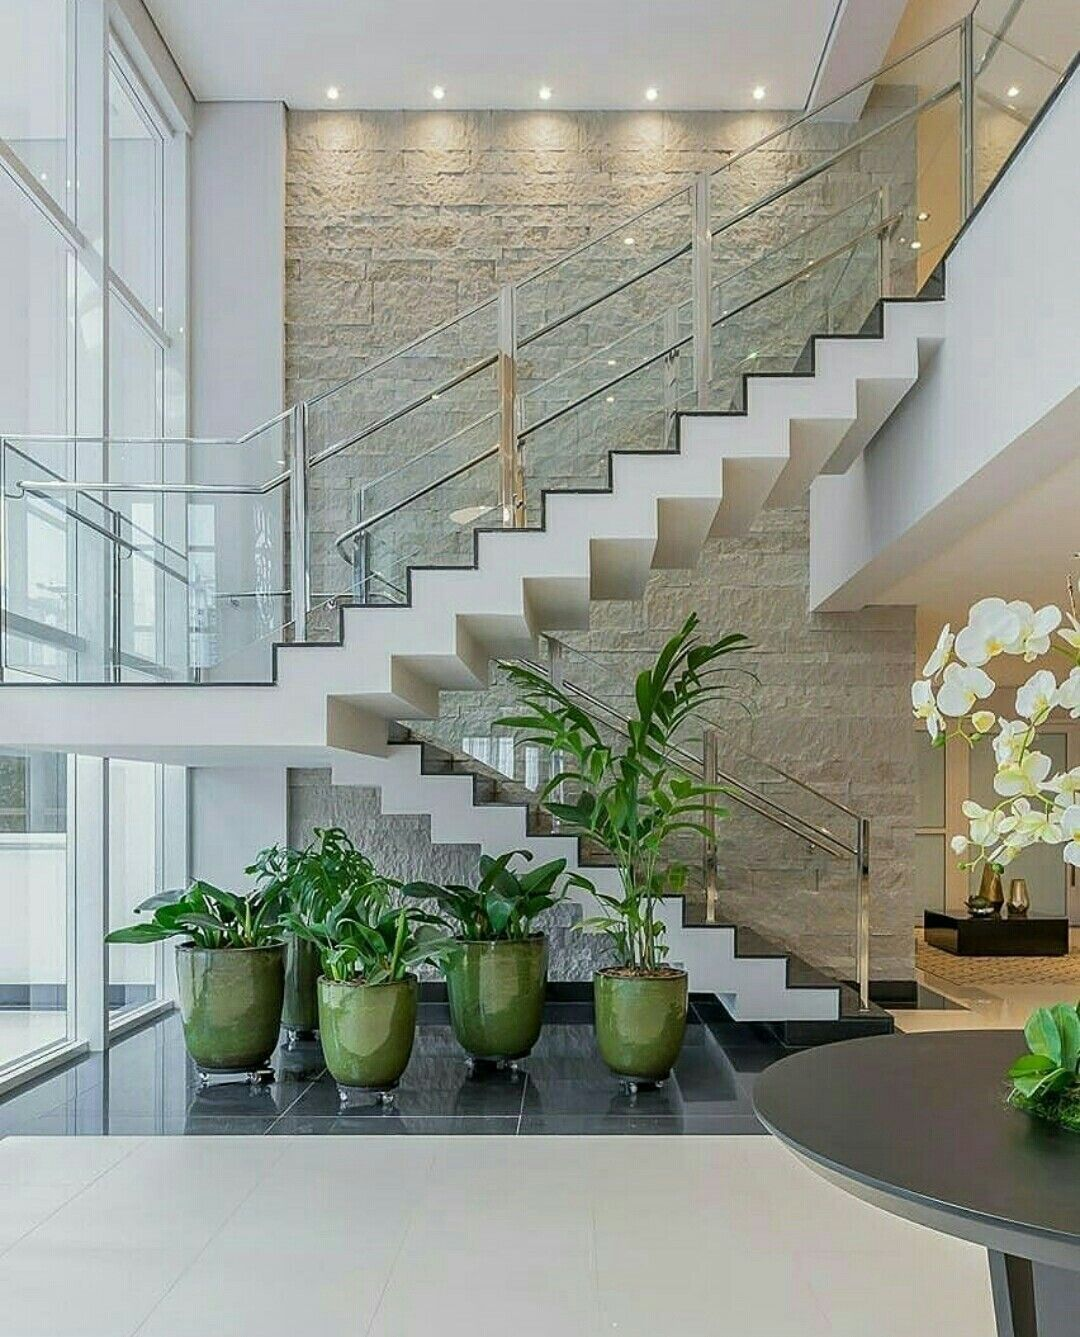 Staircase Ideas For Your Hallway That Will Really Make An: 43 Elegant Glass Stair Design Ideas